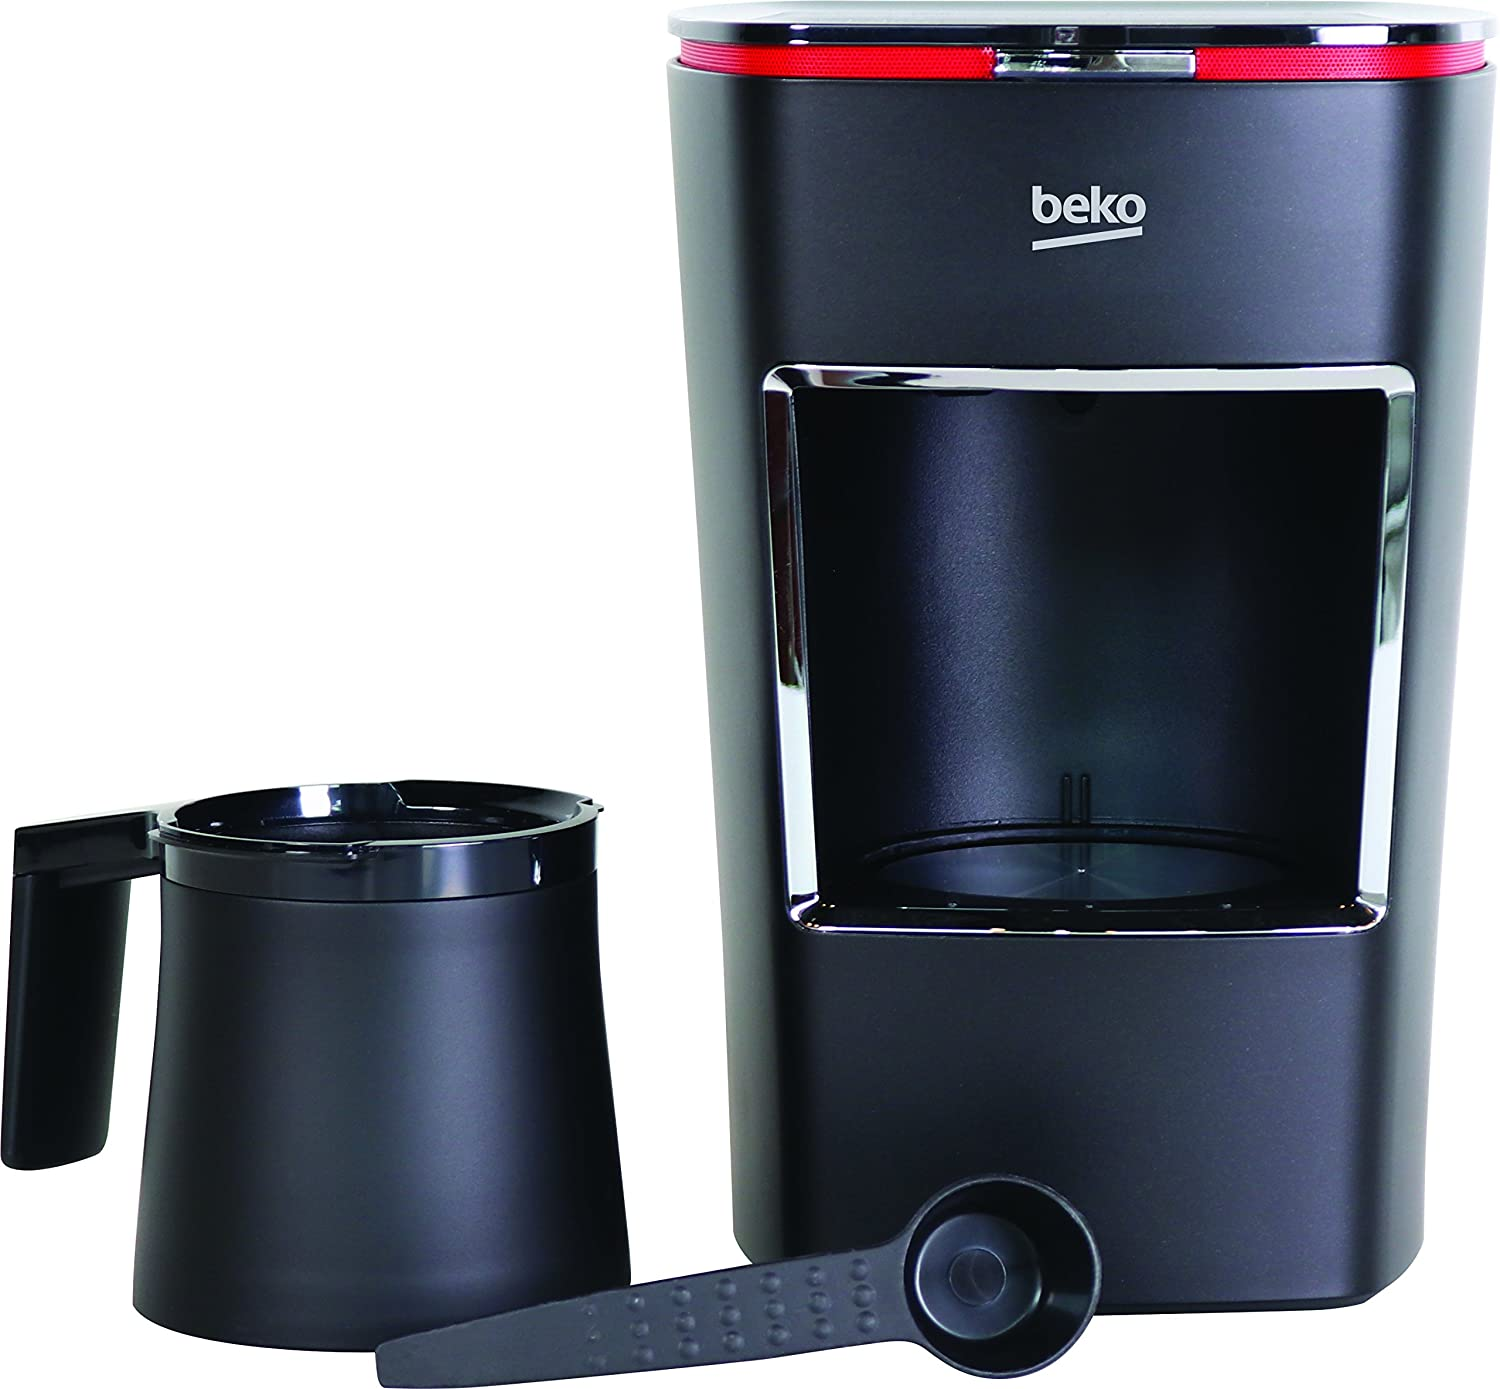 Beko Turkish Coffee Maker, Top Layer Froth with the Consistent Perfect Cup of Coffee Available Through This Ancient Brewing Method, Black Color